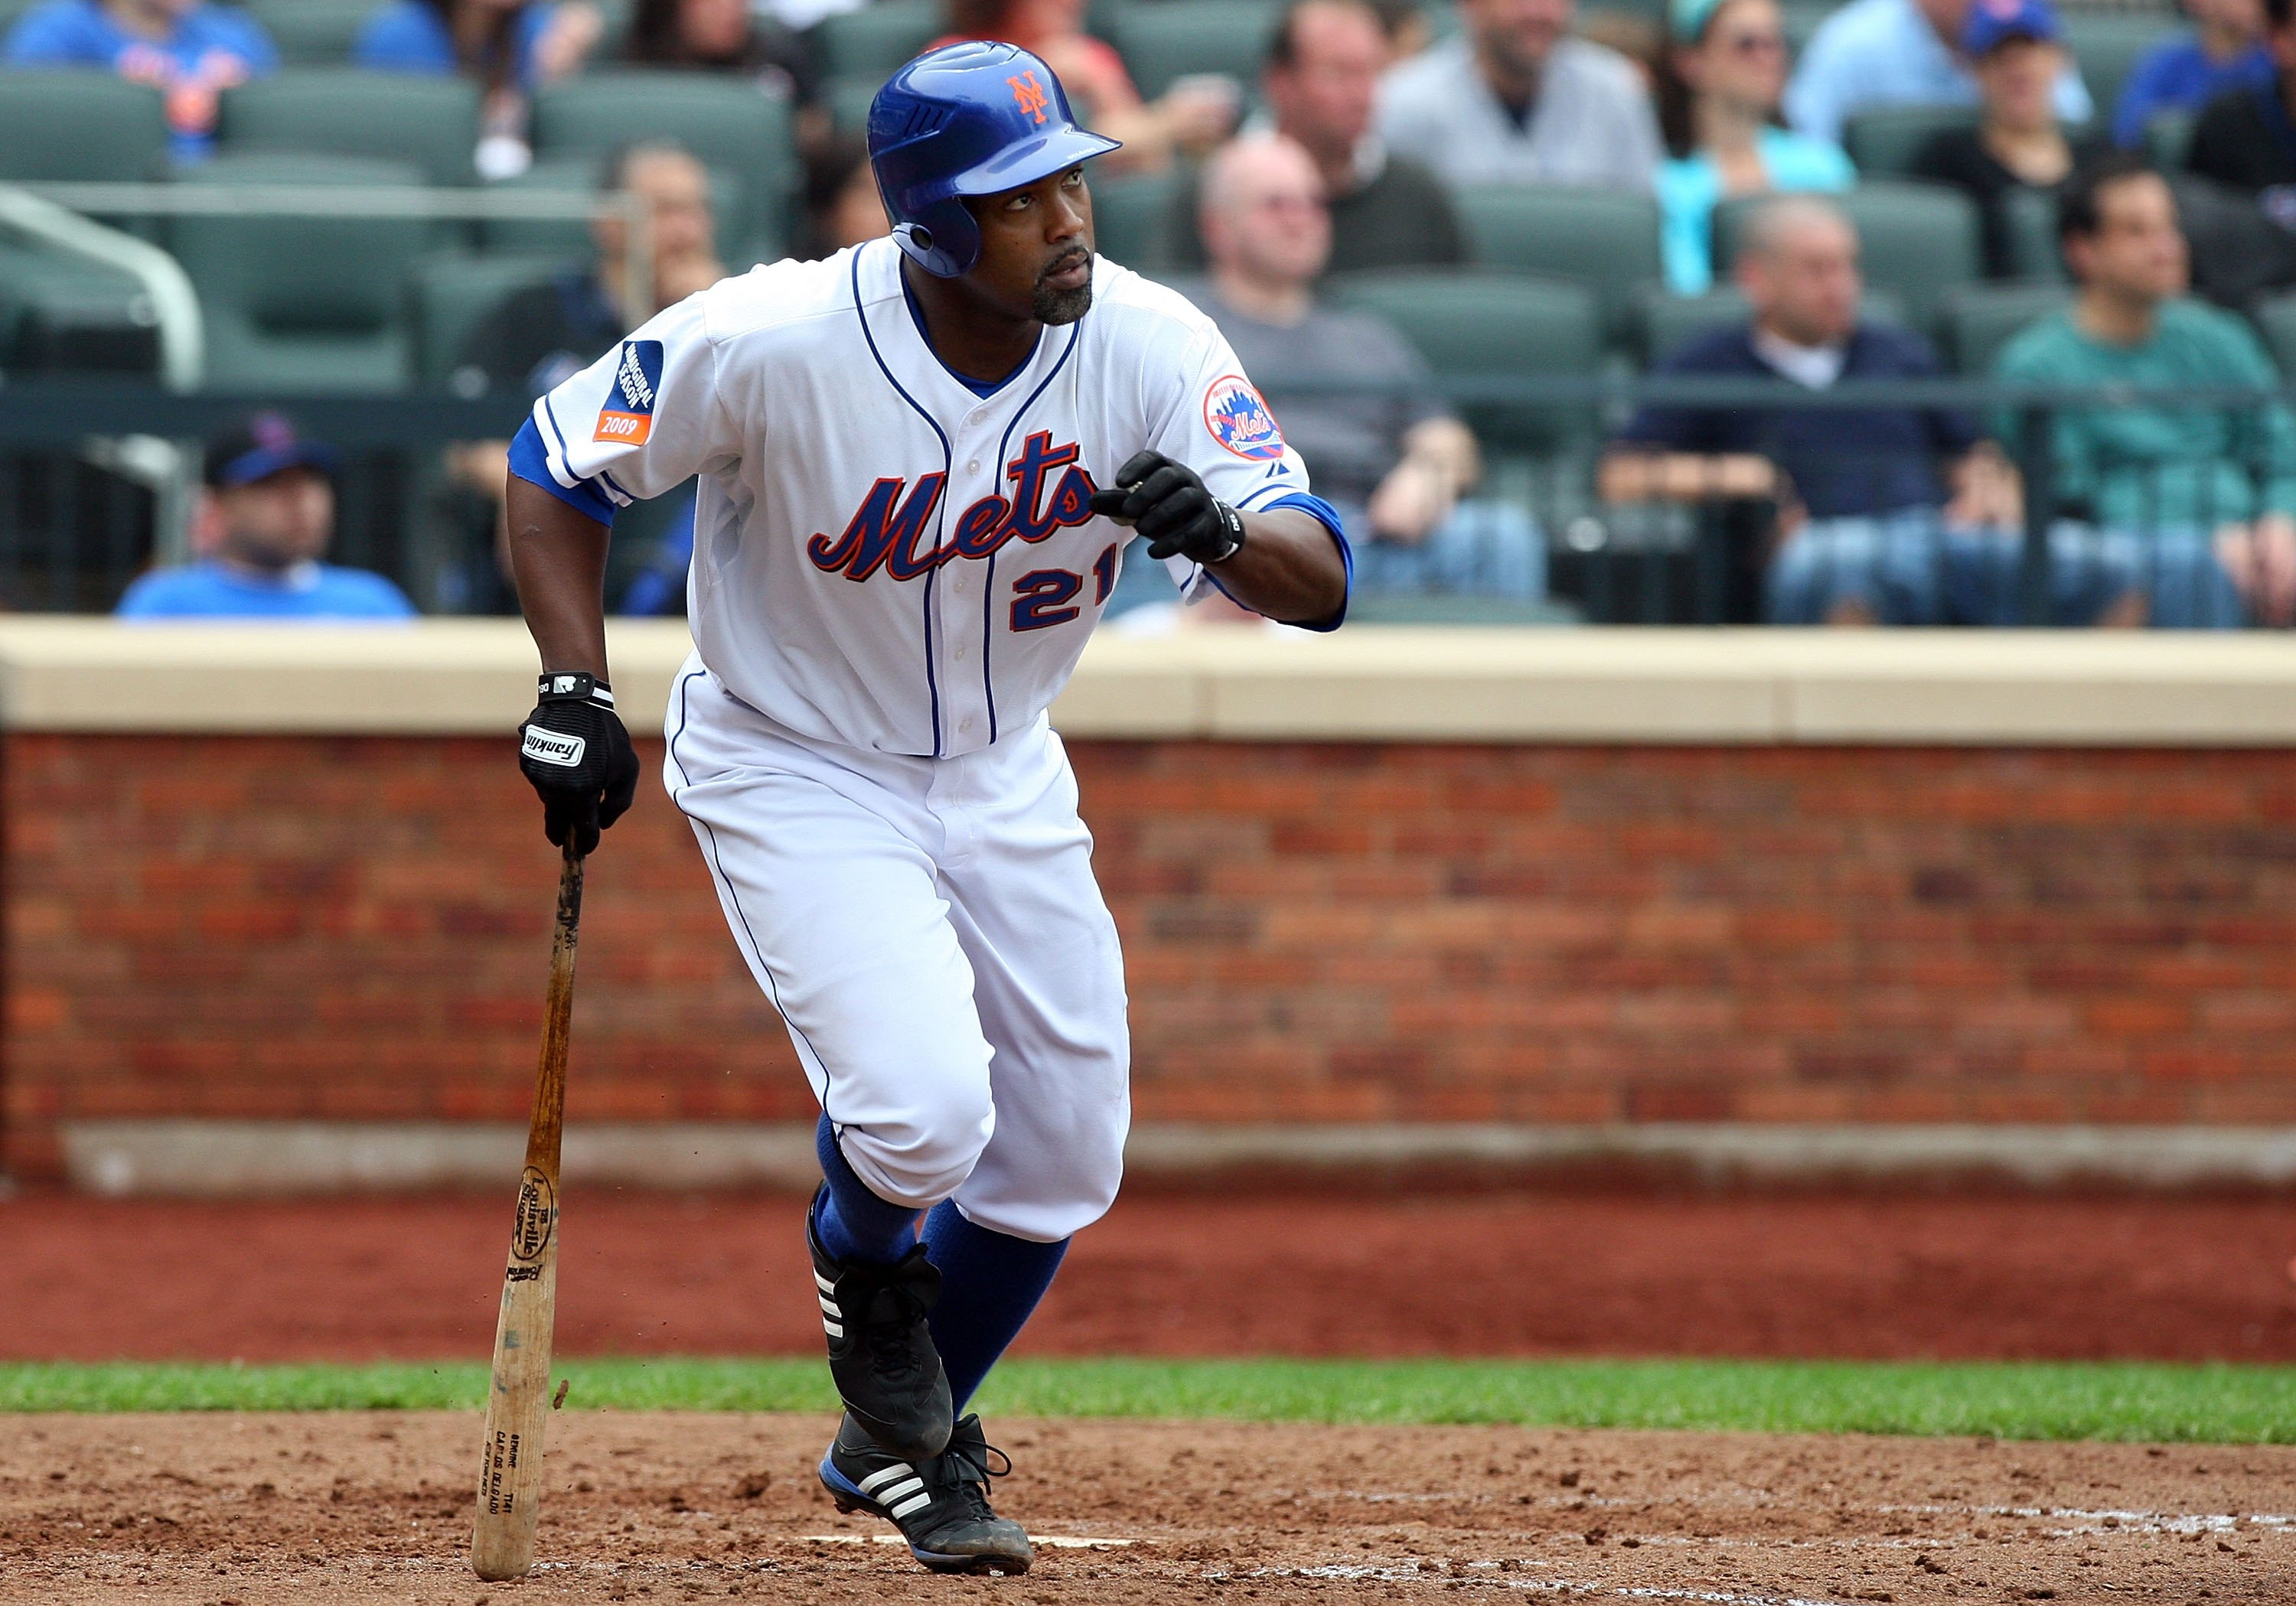 NEW YORK - MAY 09:  Carlos Delgado #21 of the New York Mets bats against the Pittsburgh Pirates on May 9, 2009 at Citi Field in the Flushing neighborhood of the Queens borough of New York City. The Mets defeated the Pirates 10-1.  (Photo by Jim McIsaac/Ge